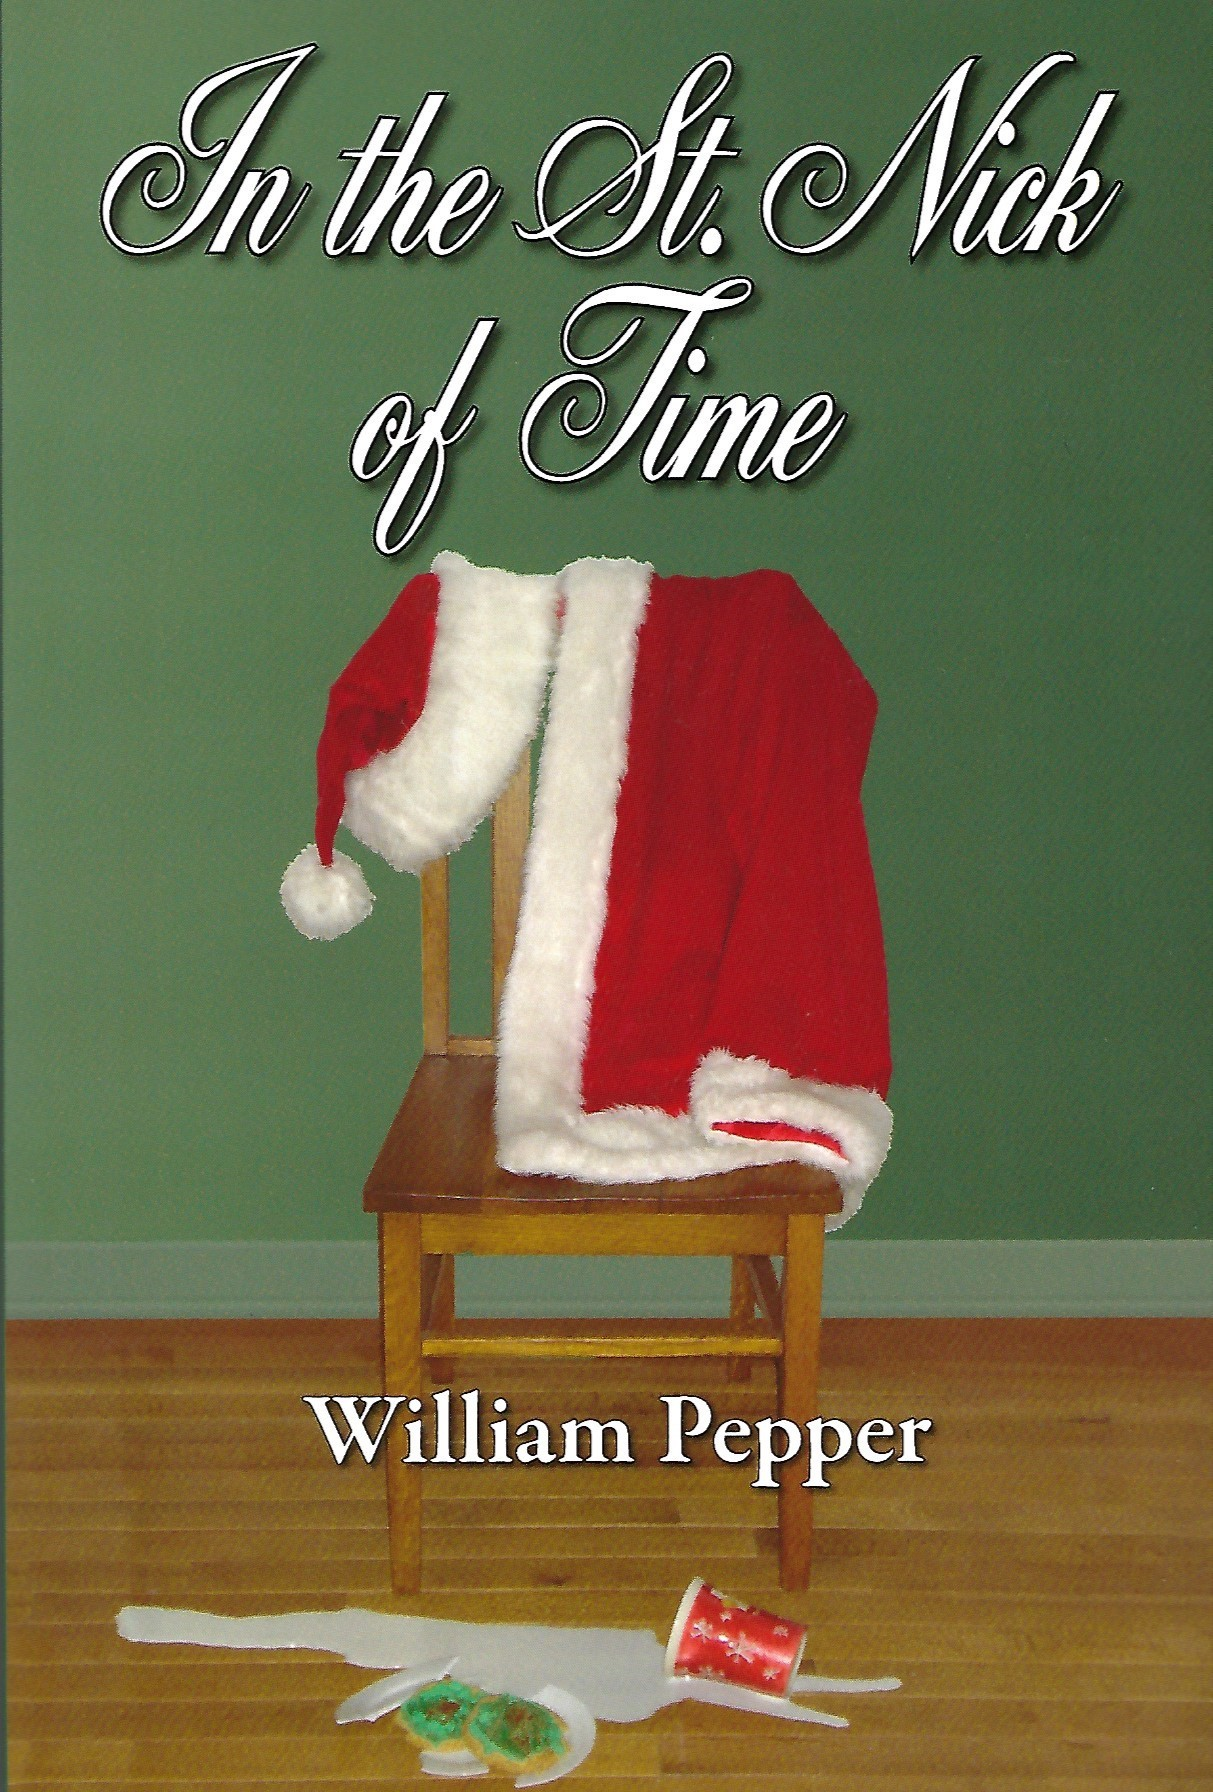 "A lot of people have lousy Christmases, even when they live in the town of Santa Claus, Indiana.  Cameron Jones used to be a successful author. But this year, as another holiday looms, he is beset by a depression that rivals fruitcake in density. His ex-wife is moving away with their daughter Holly and a sleezy reporter is dogging him. And the foul-mouthed goldfish hallucination that keeps nagging him is no help at all.  Cameron's buddy Dogwater Hunt is a broke, obsessed alien-abductee with a pathological fear of holiday lights. He's desperate to prove Earth will be visited on Christmas Eve by mysterious ""Santa aliens."" If he can catch ""Santa"", he'll push forth the frontiers of science - and maybe get a new TV.  Meanwhile, Santa Claus - the big man himself, not the town - is beaten down by centuries of children growing up and no longer believing. He ponders the reality of his imaginary world - living on cookies, hanging out with elves. It's all so absurd, he can't help but wonder ""Do I really exist?""  The answer to that question could determine the future of Christmas. Cameron and Dogwater are unwittingly caught up in a plan to save Santa from himself. If you ever believed St. Nick was real, buy this book. Maybe he still is.  Available in print and E-Book pretty much everywhere.  And you can add it on Goodreads.   PRINT:  Amazon ,  B&N,   BAM ,  Indiebound   EBOOK:  Amazon ,  B&N ,  Kobo"